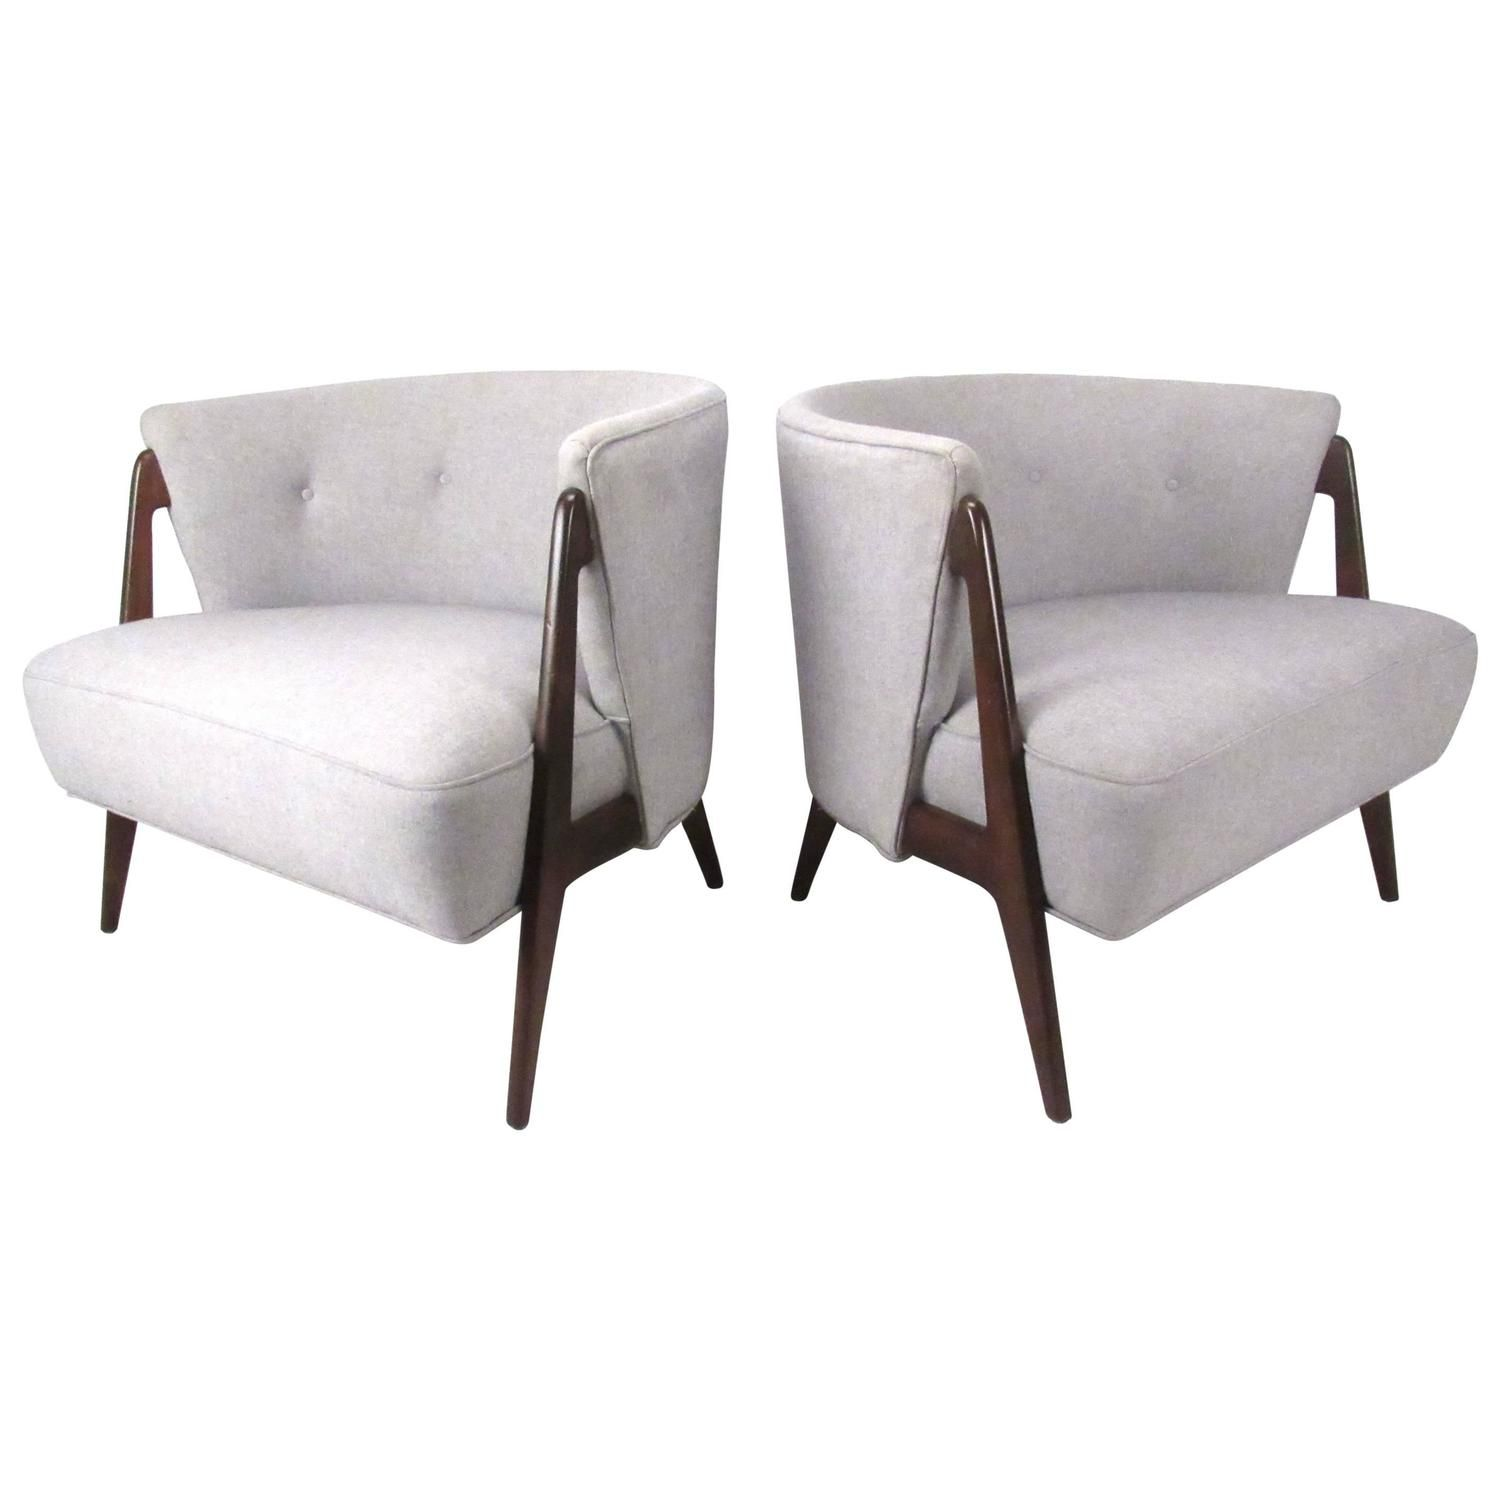 Stylish Pair Of Mid-Century Modern Barrel Back Chairs